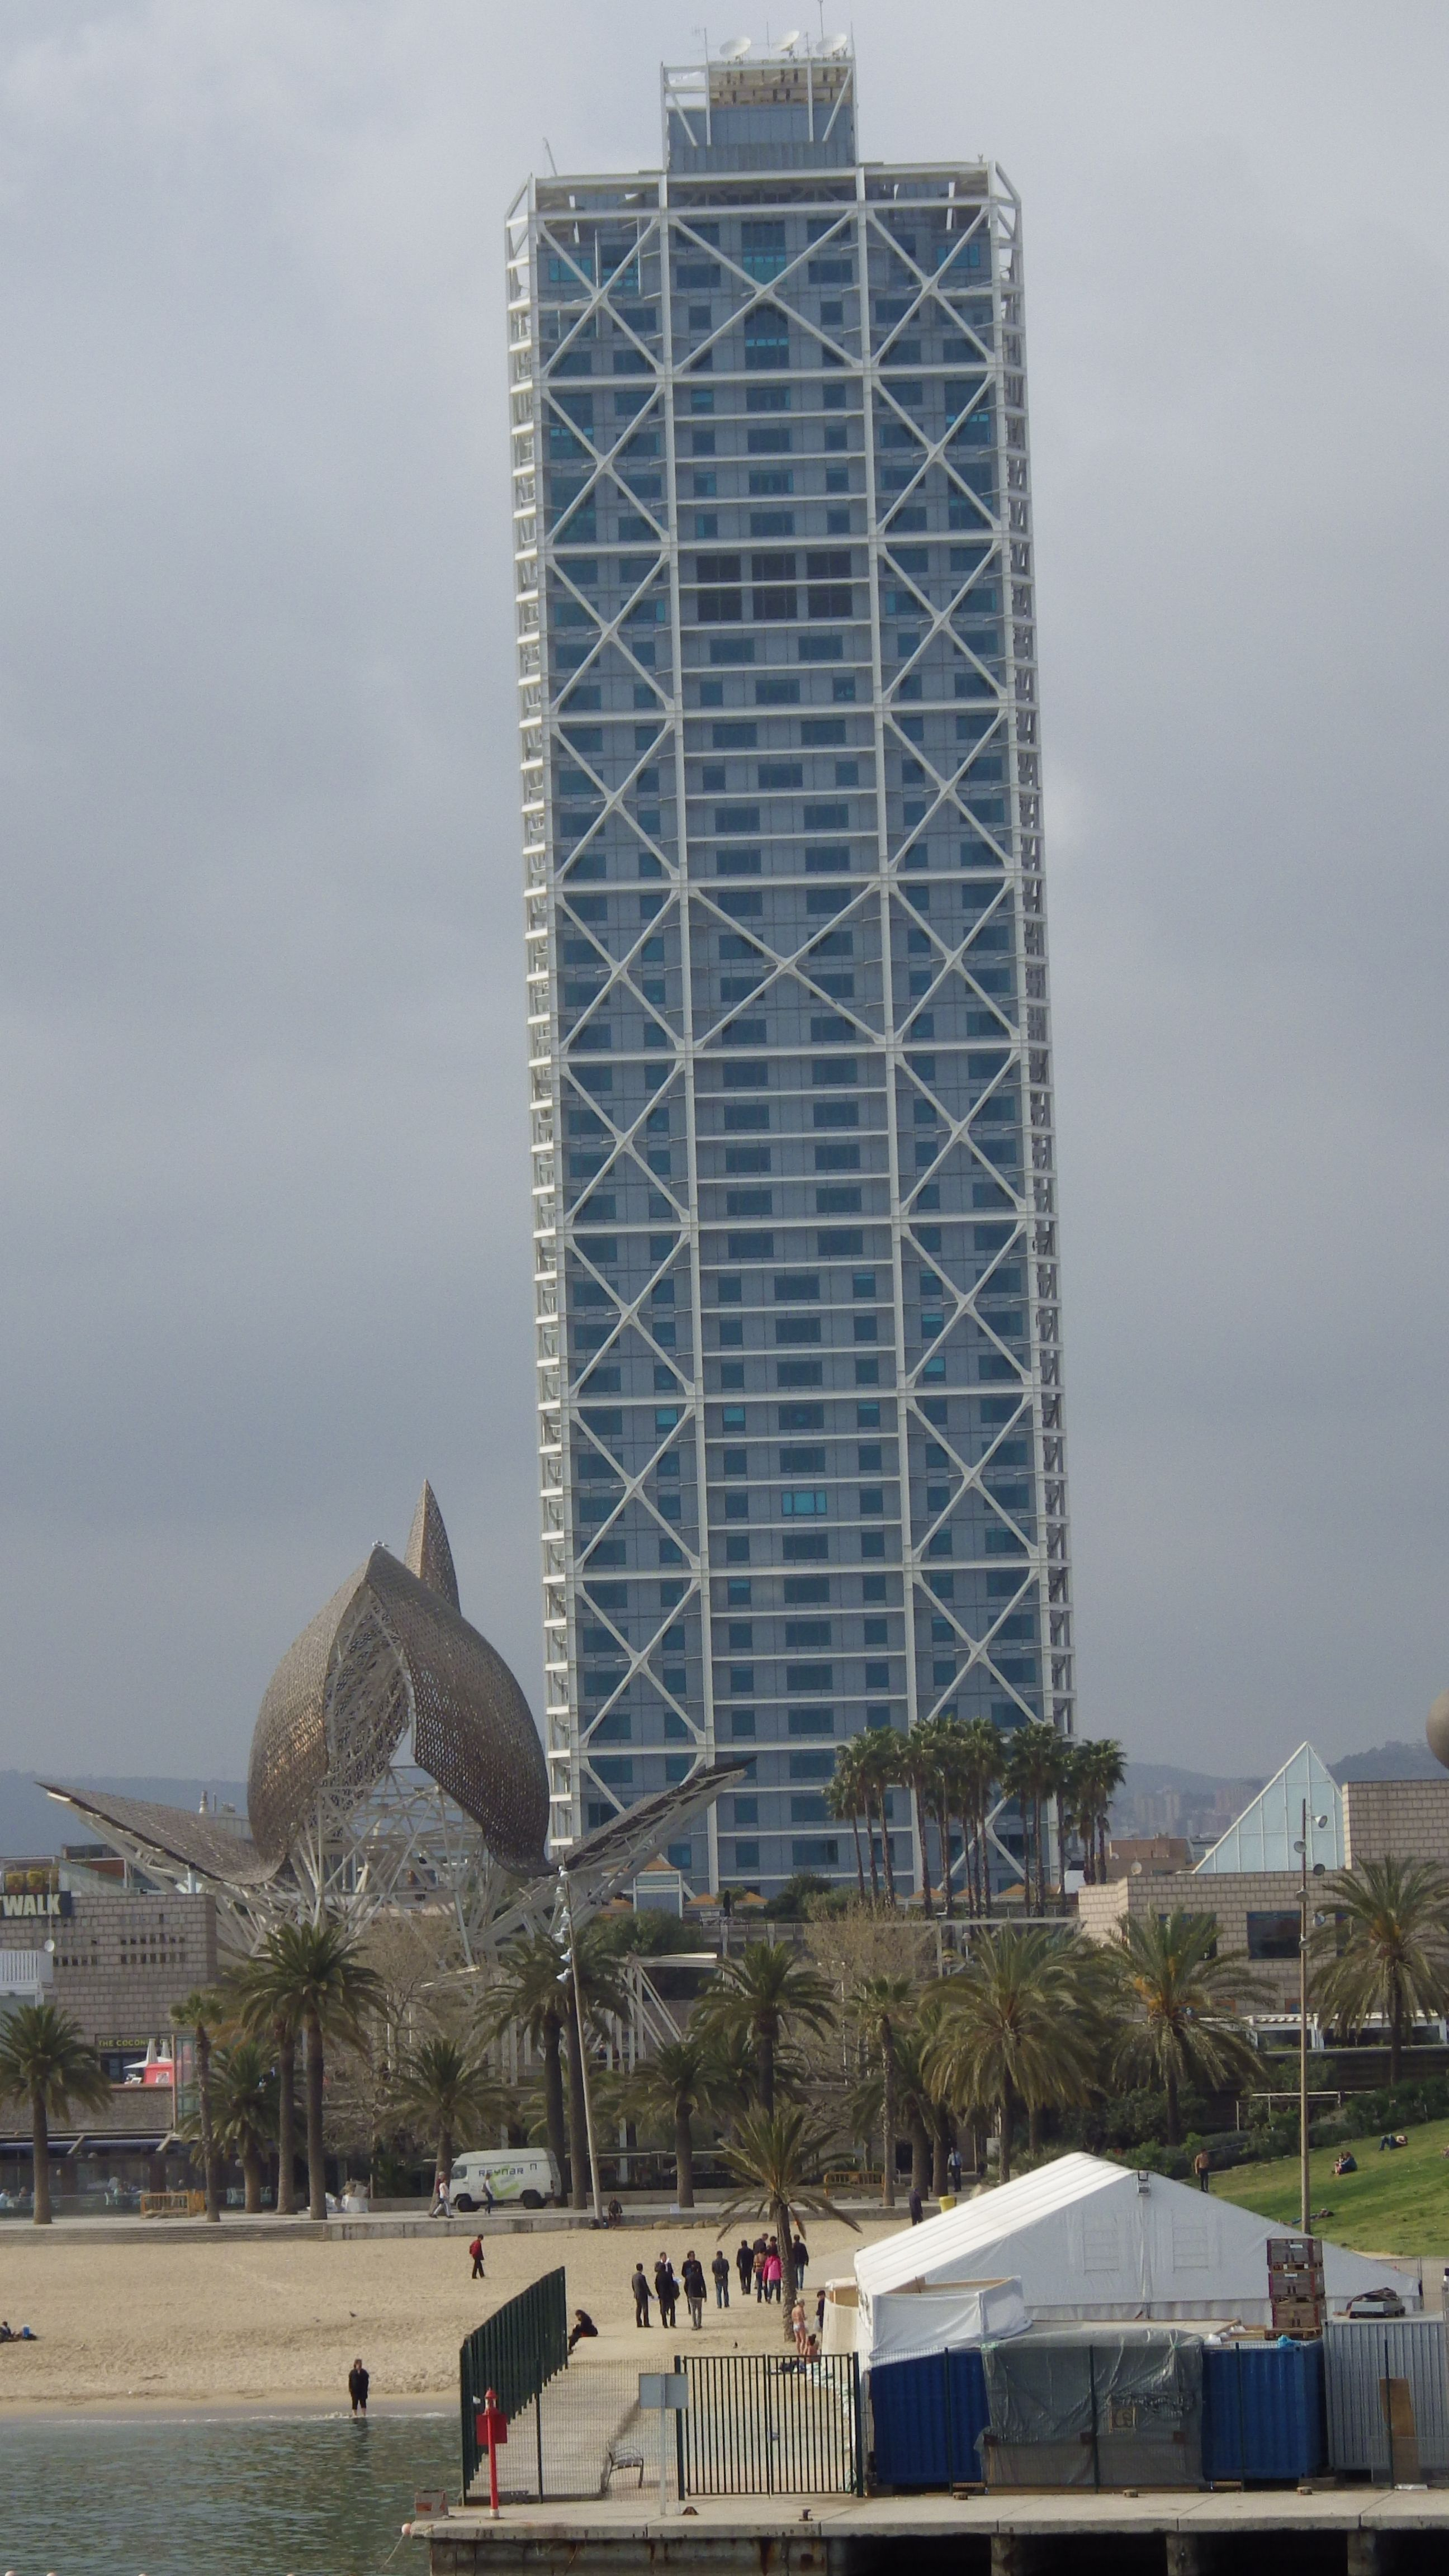 """Excursions in Barcelona, Costa Brava & Catalunya; Barcelona Airport Private Arrival Transfer. Excursions in Barcelona; Vacations in Barcelona; Holidays in Barcelona. Close acquaintance with Spanish cuisine: gastronomical feasts; Mediterranean delicacies; Ocean delights: everything is included in the program of visits """"Full Contact"""". http://barcelonafullhd.com"""